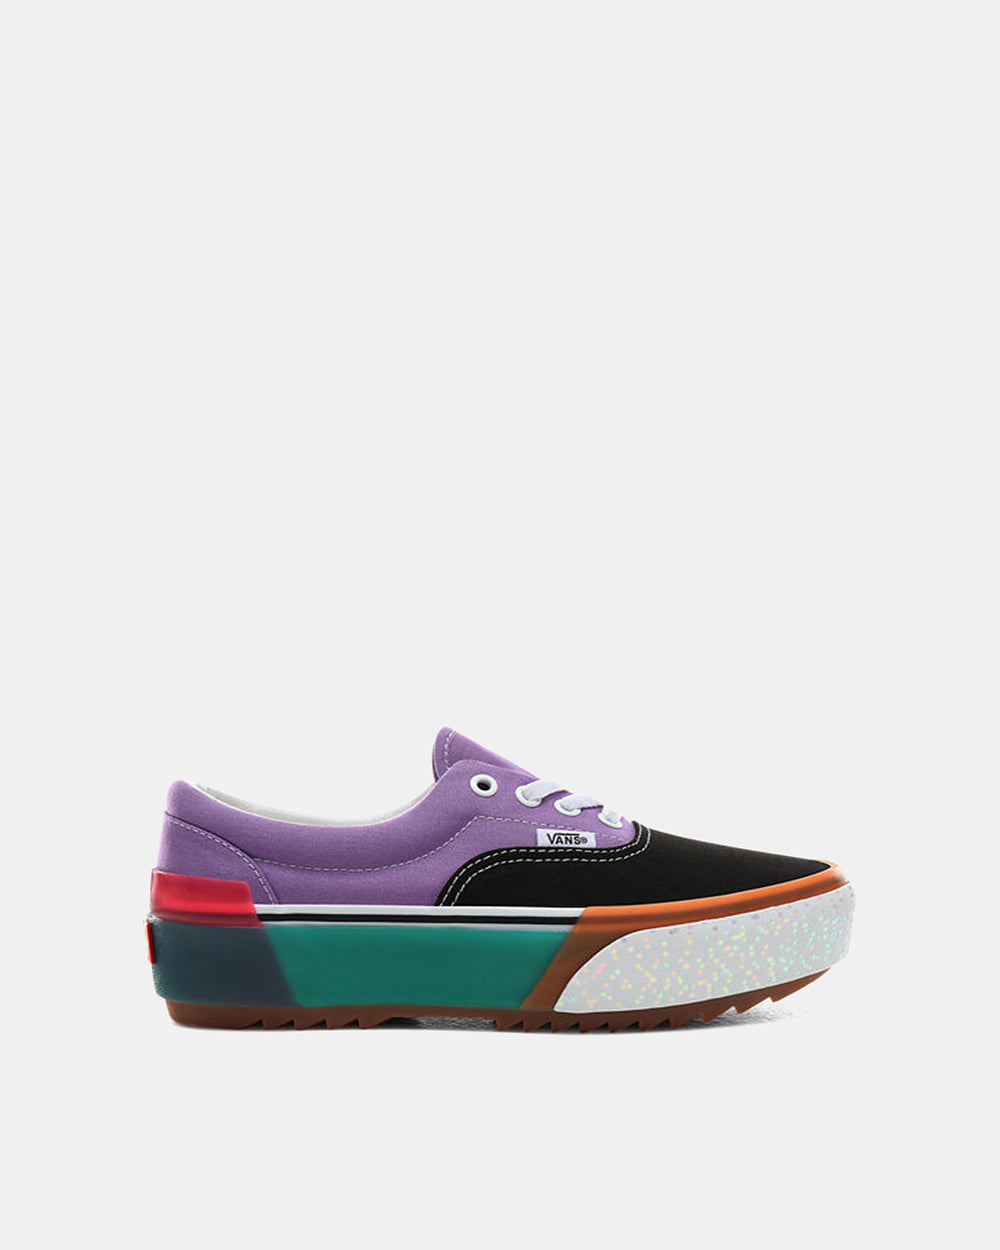 Vans - Grade School Era Stacked (Confetti | Fairy Wren | Sea Green)